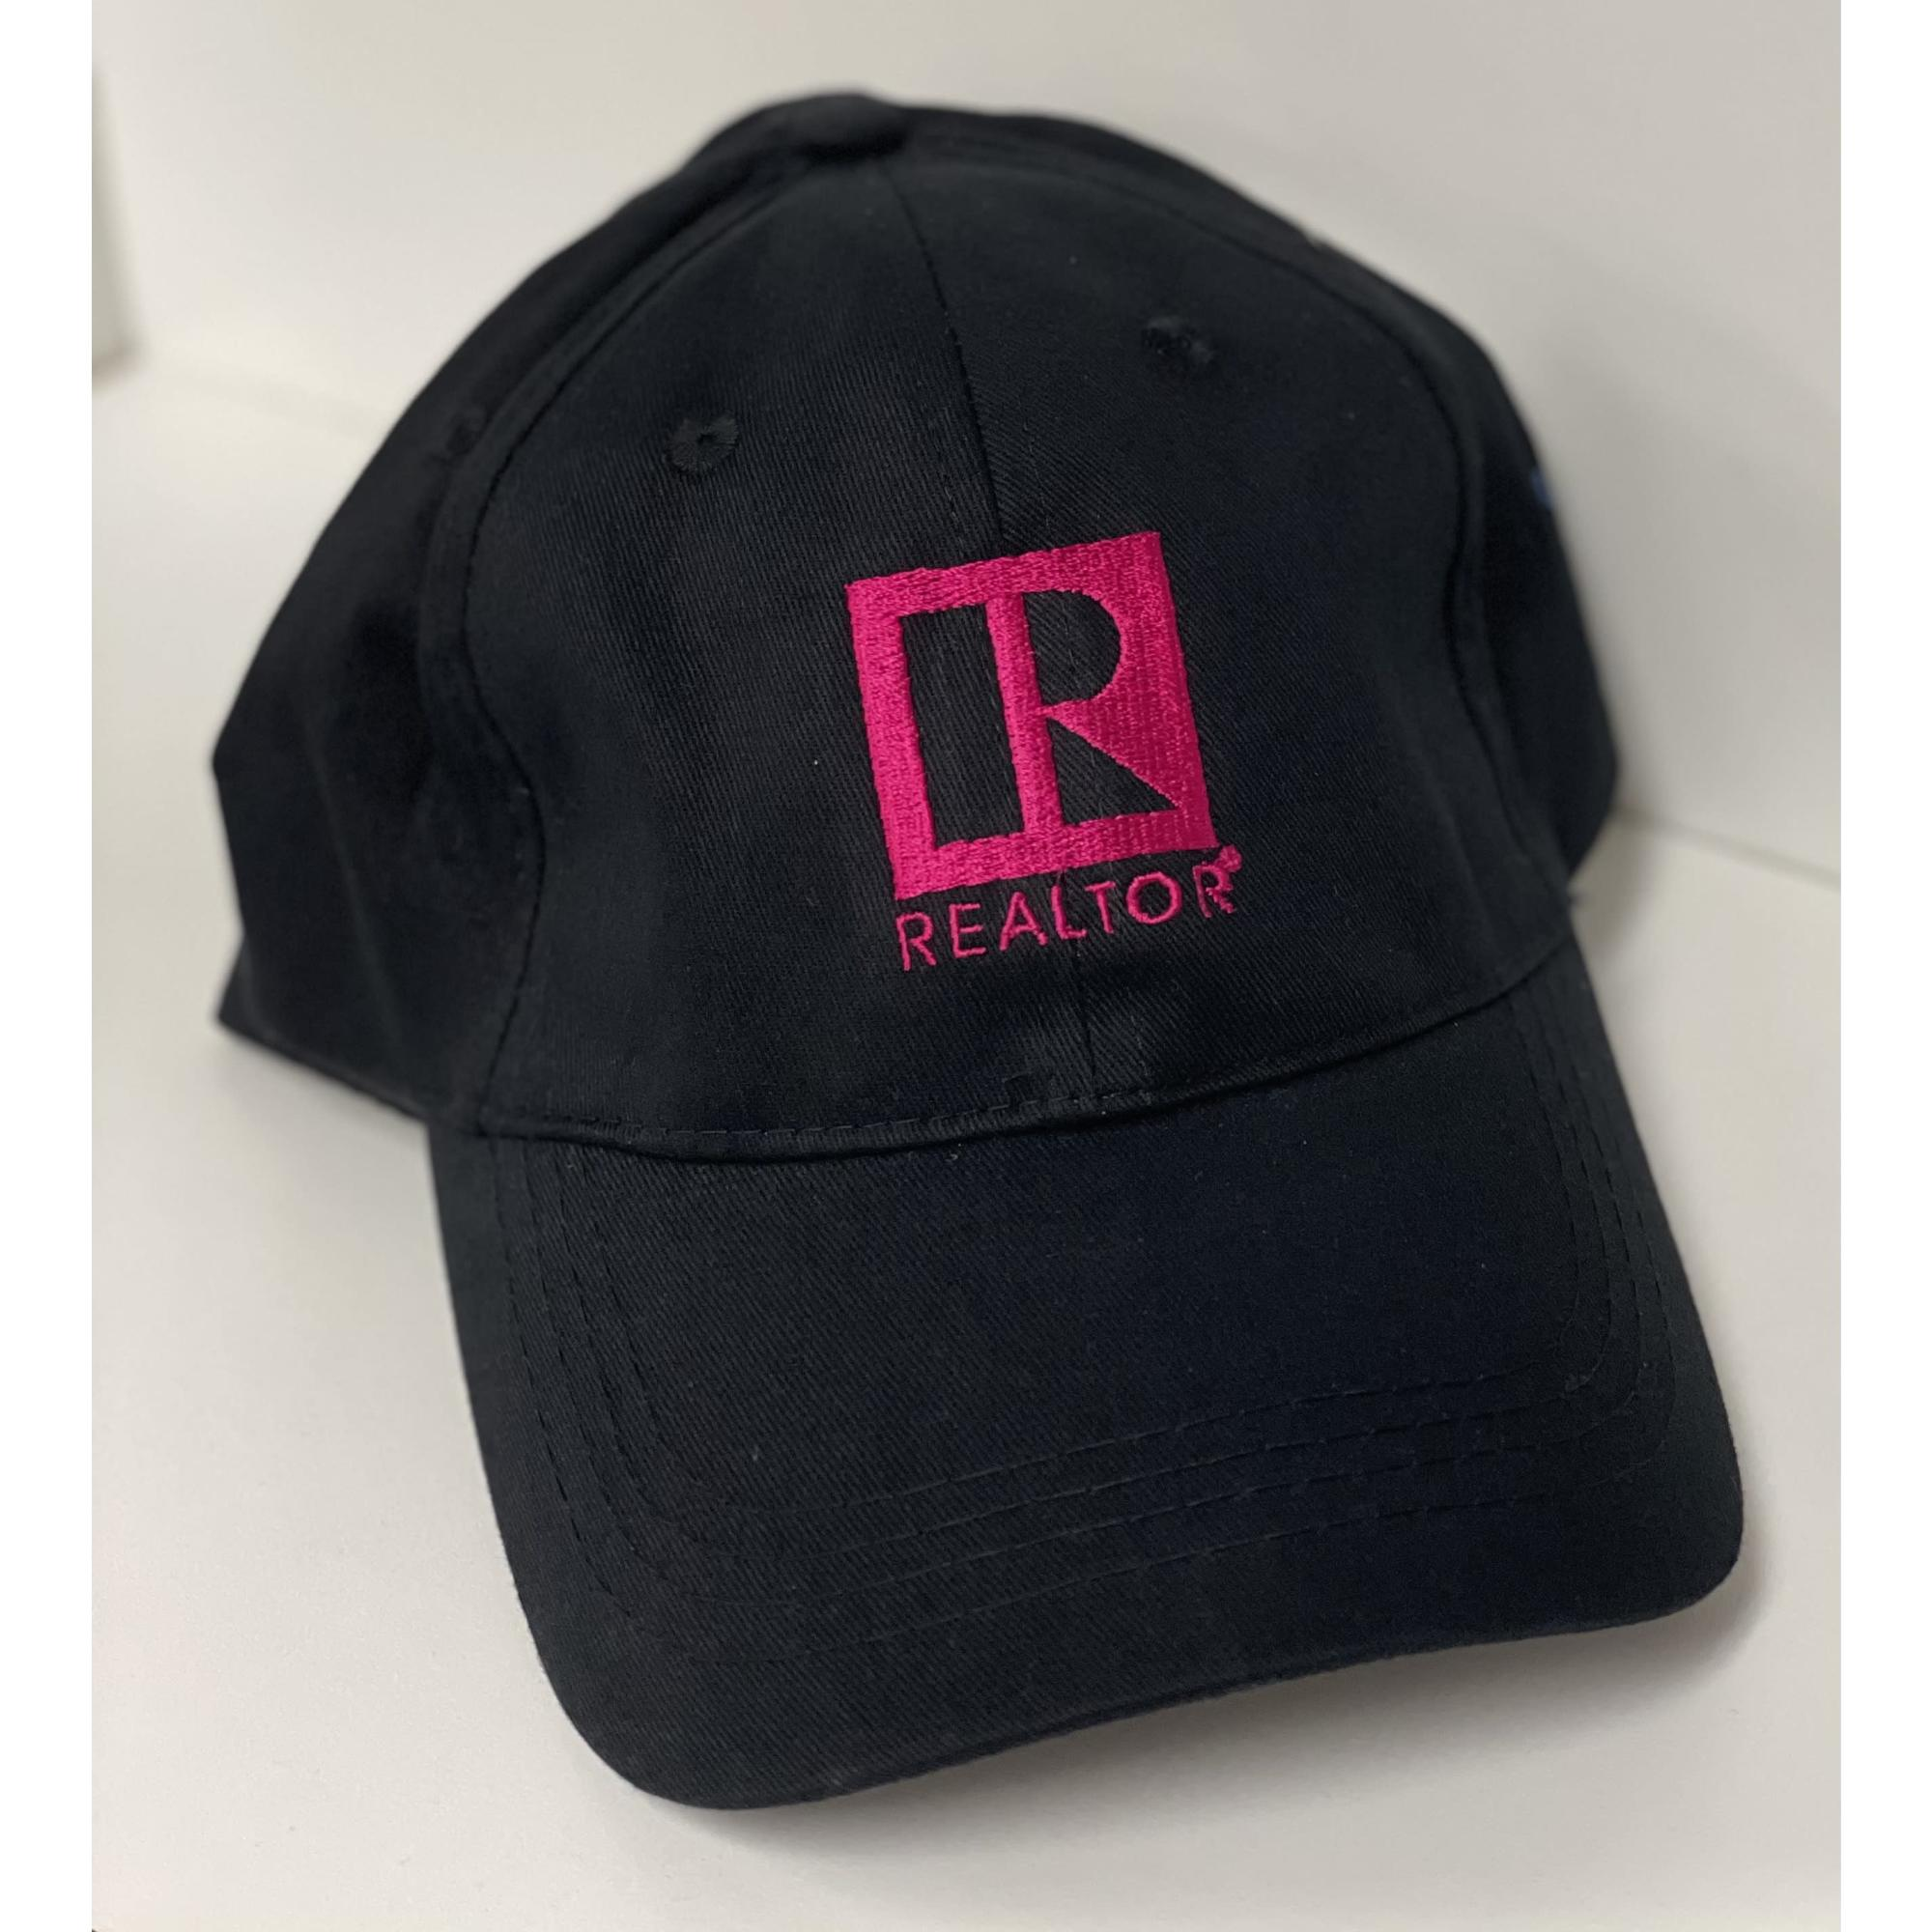 Black and Pink REALTOR® Ball Cap provided by WCREALTORS®